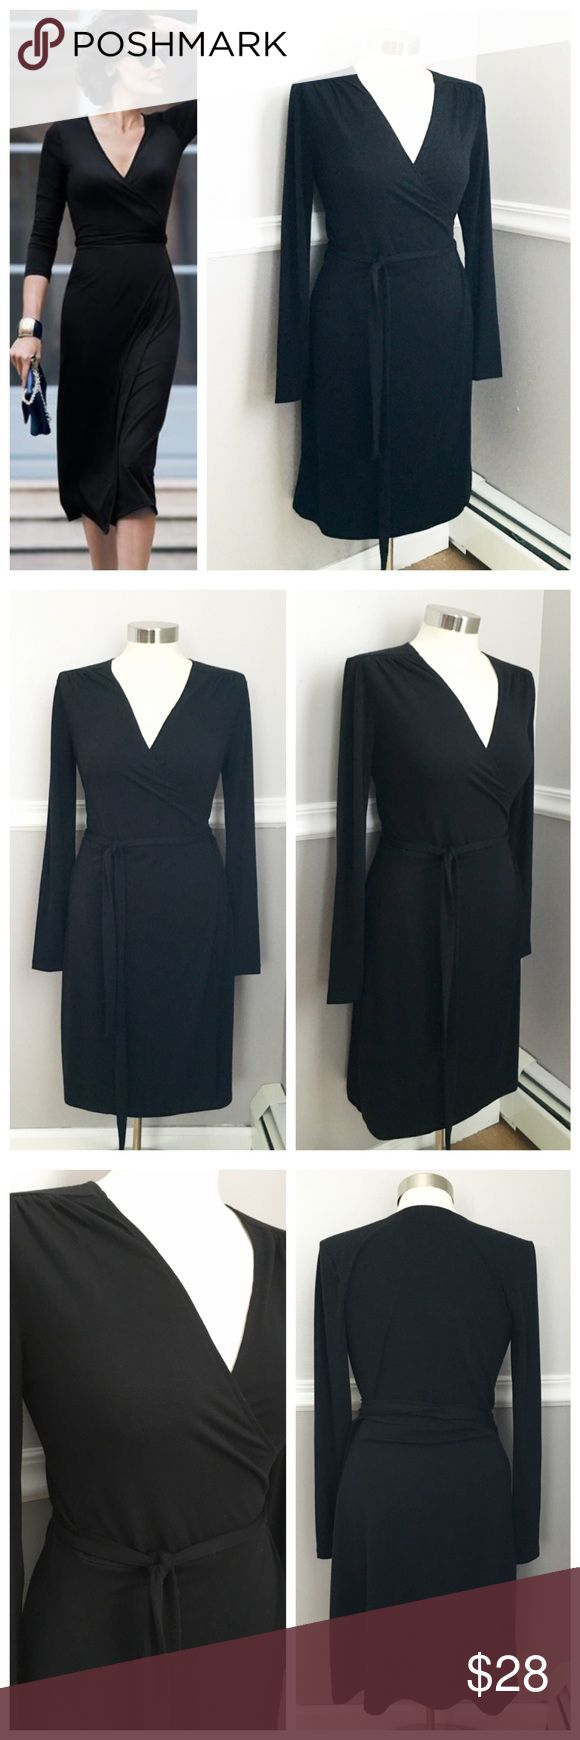 Black Wrap Dress Classic black wrap dress - old navy. Soft fabric with a bit of stretch. Worn once for a few hours only. Long sleeves. First photo on left not actual item * just showing for style! BUNDLES 20% OFF 🎉 Old Navy Dresses